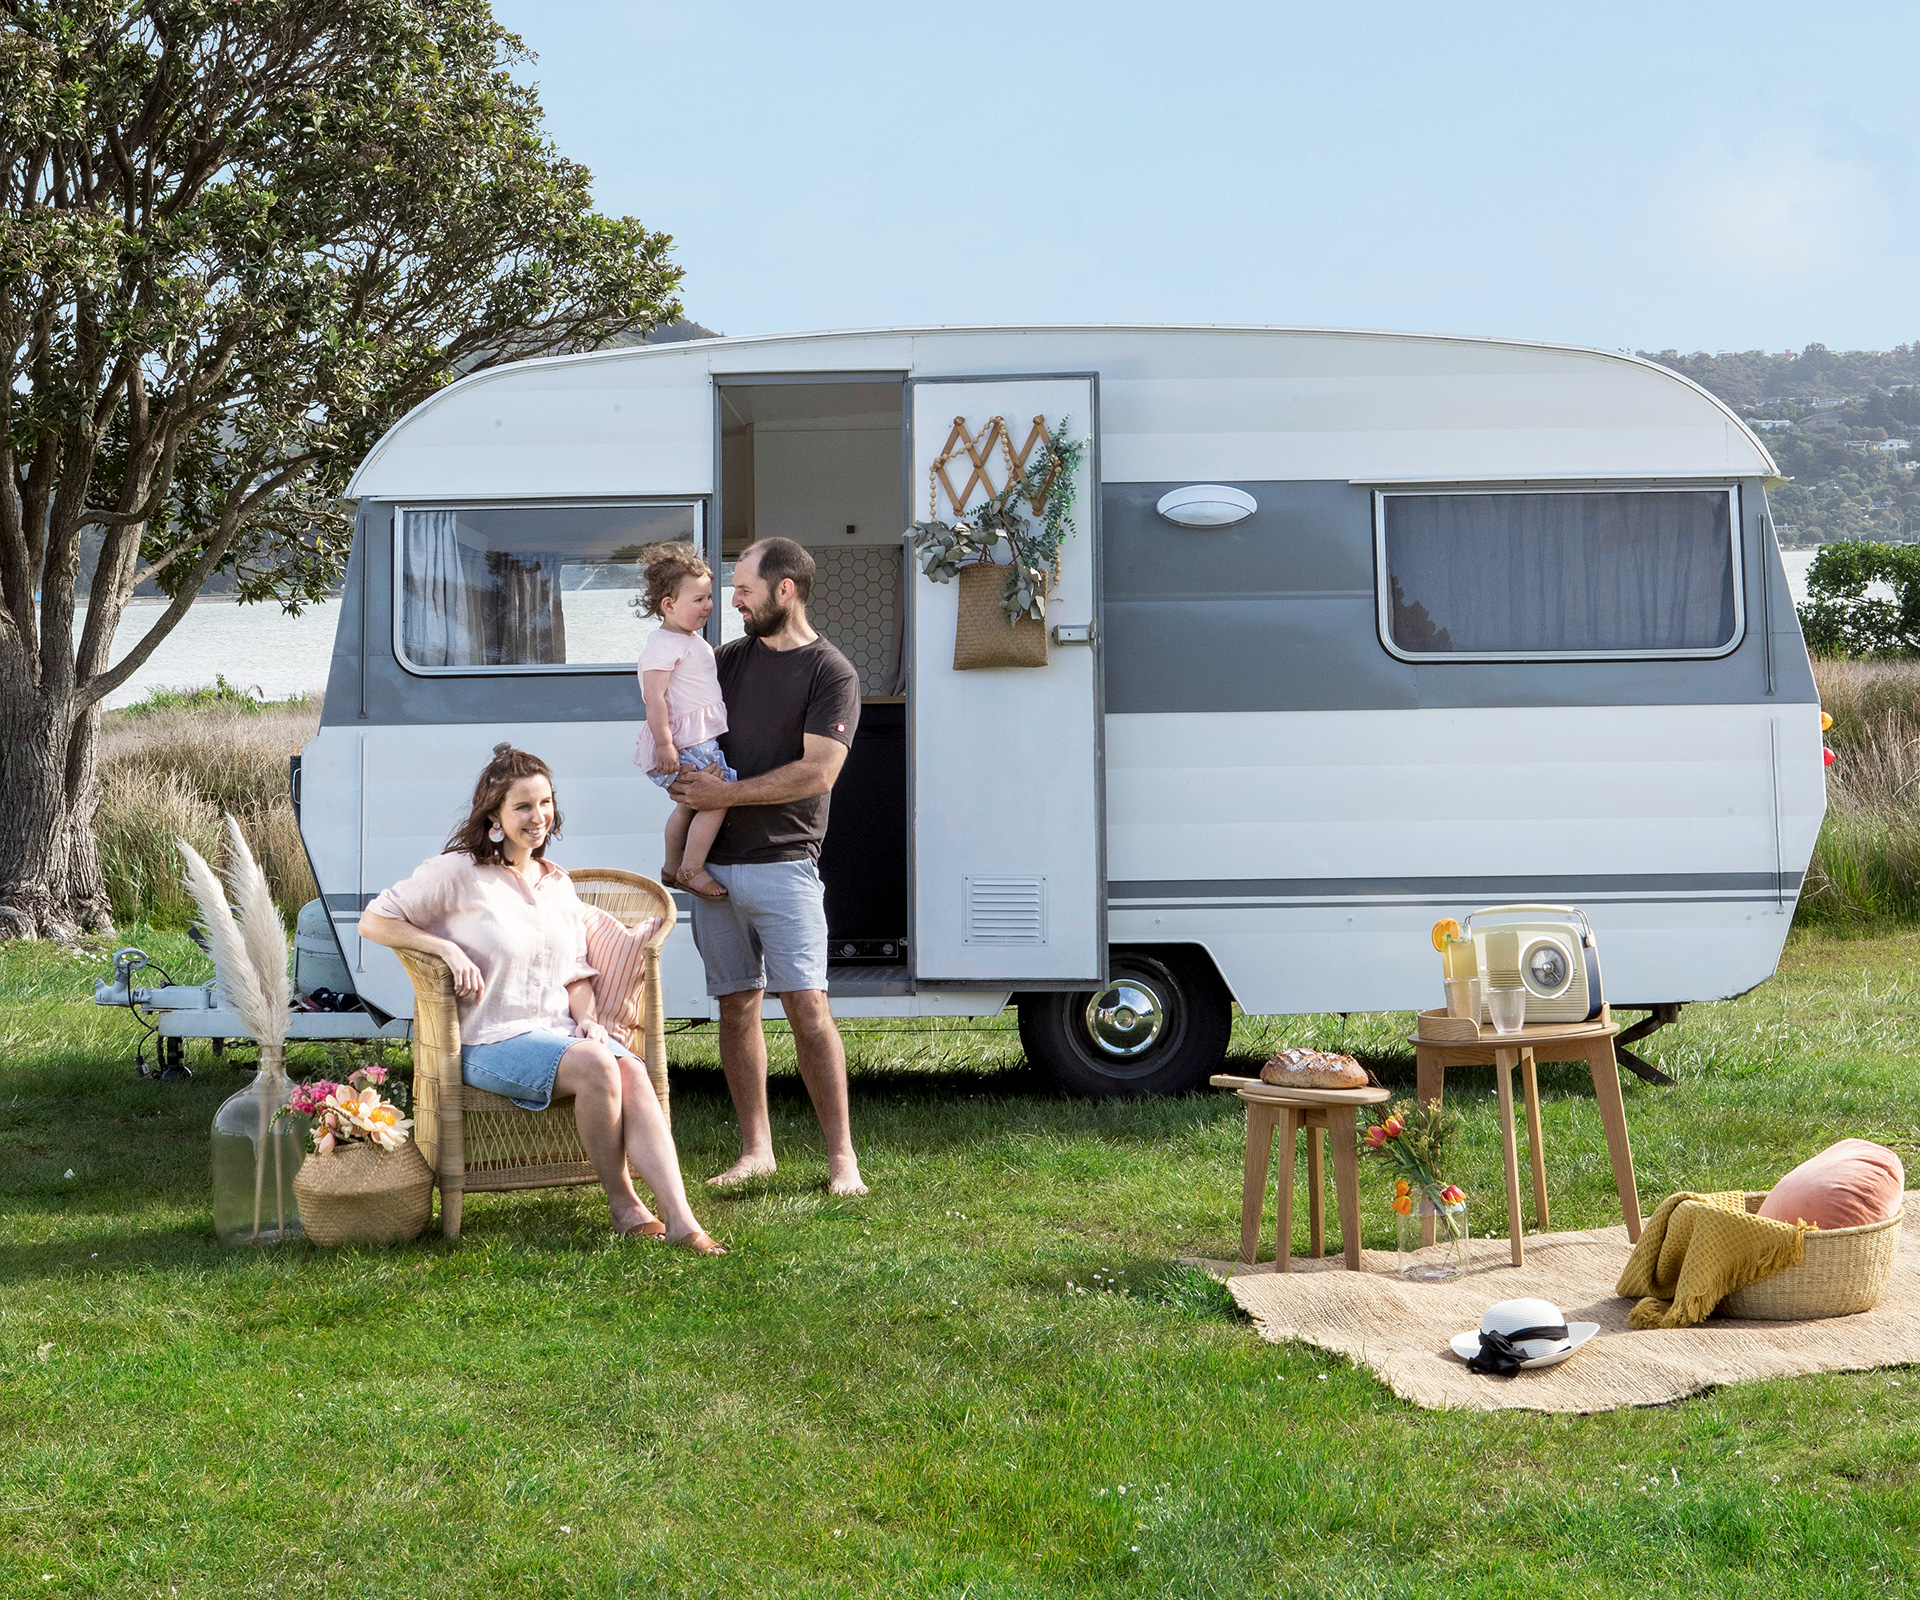 List of Things Consider To Get Your Family the Best Caravan